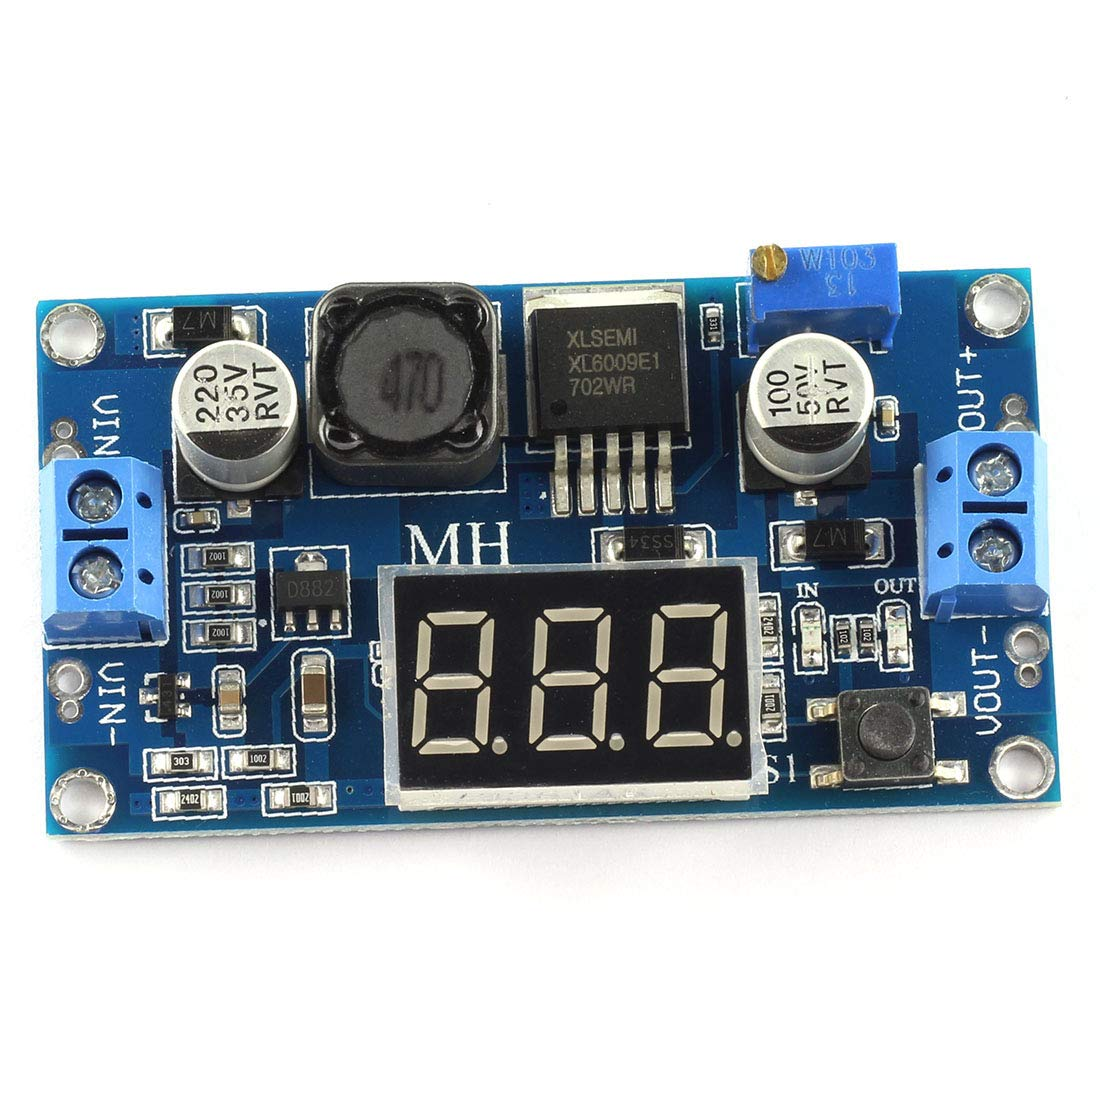 Dzs Elec Xl6009 Dc Booster Regulator Module Input 3 32v To Output Step Up 4a 5 35v Instead Of Lm2577 With Digital Tube Display